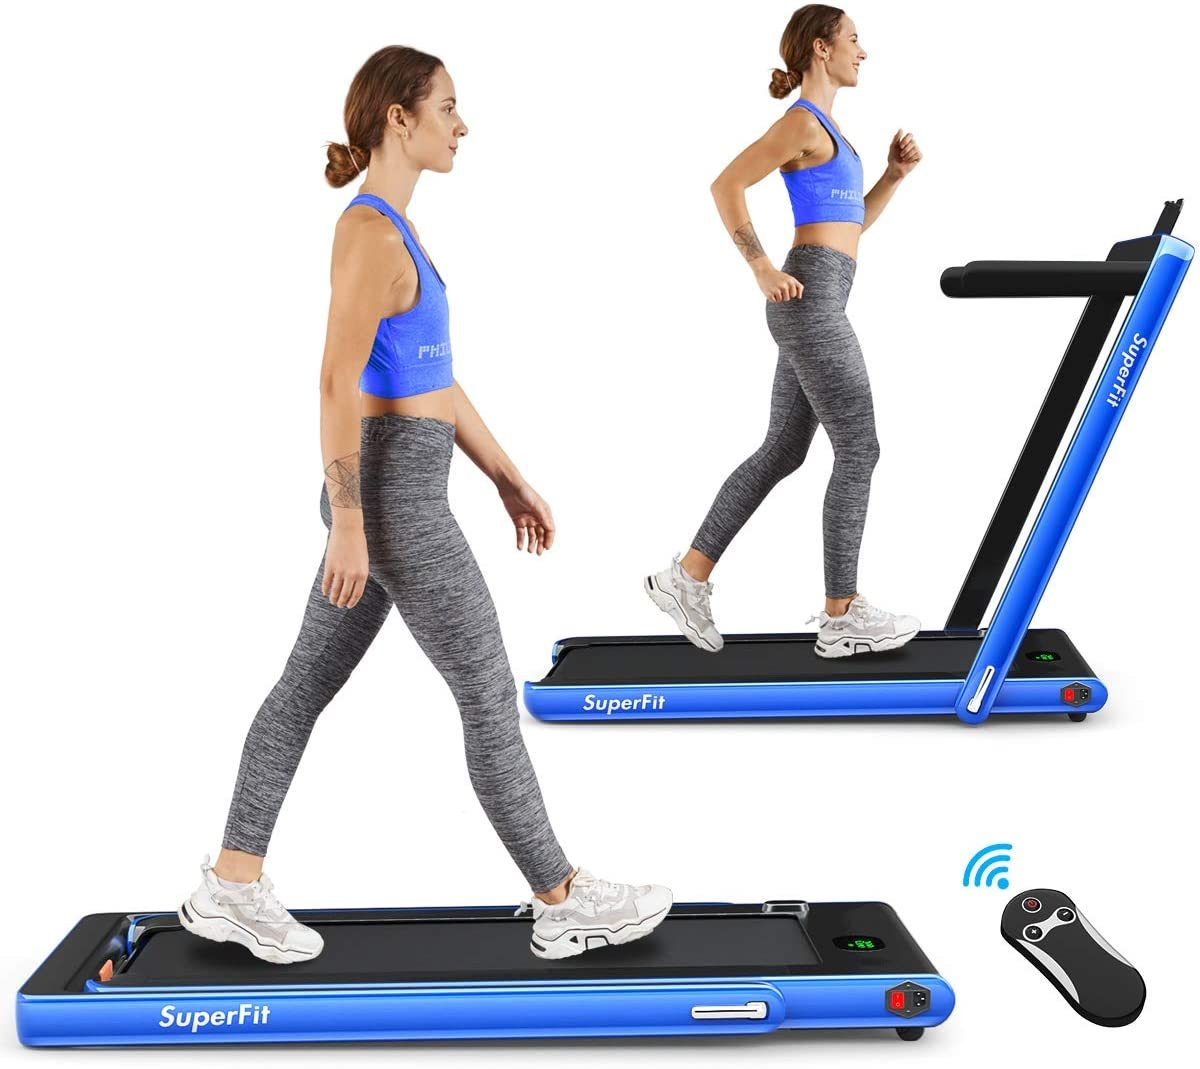 2 in 1 Folding Treadmill, 2.25HP Under Desk Electric Treadmill, Installation-Free, with Bluetooth Speaker, Remote Control and LED Display, Walking Jogging Machine for Home/Office Use